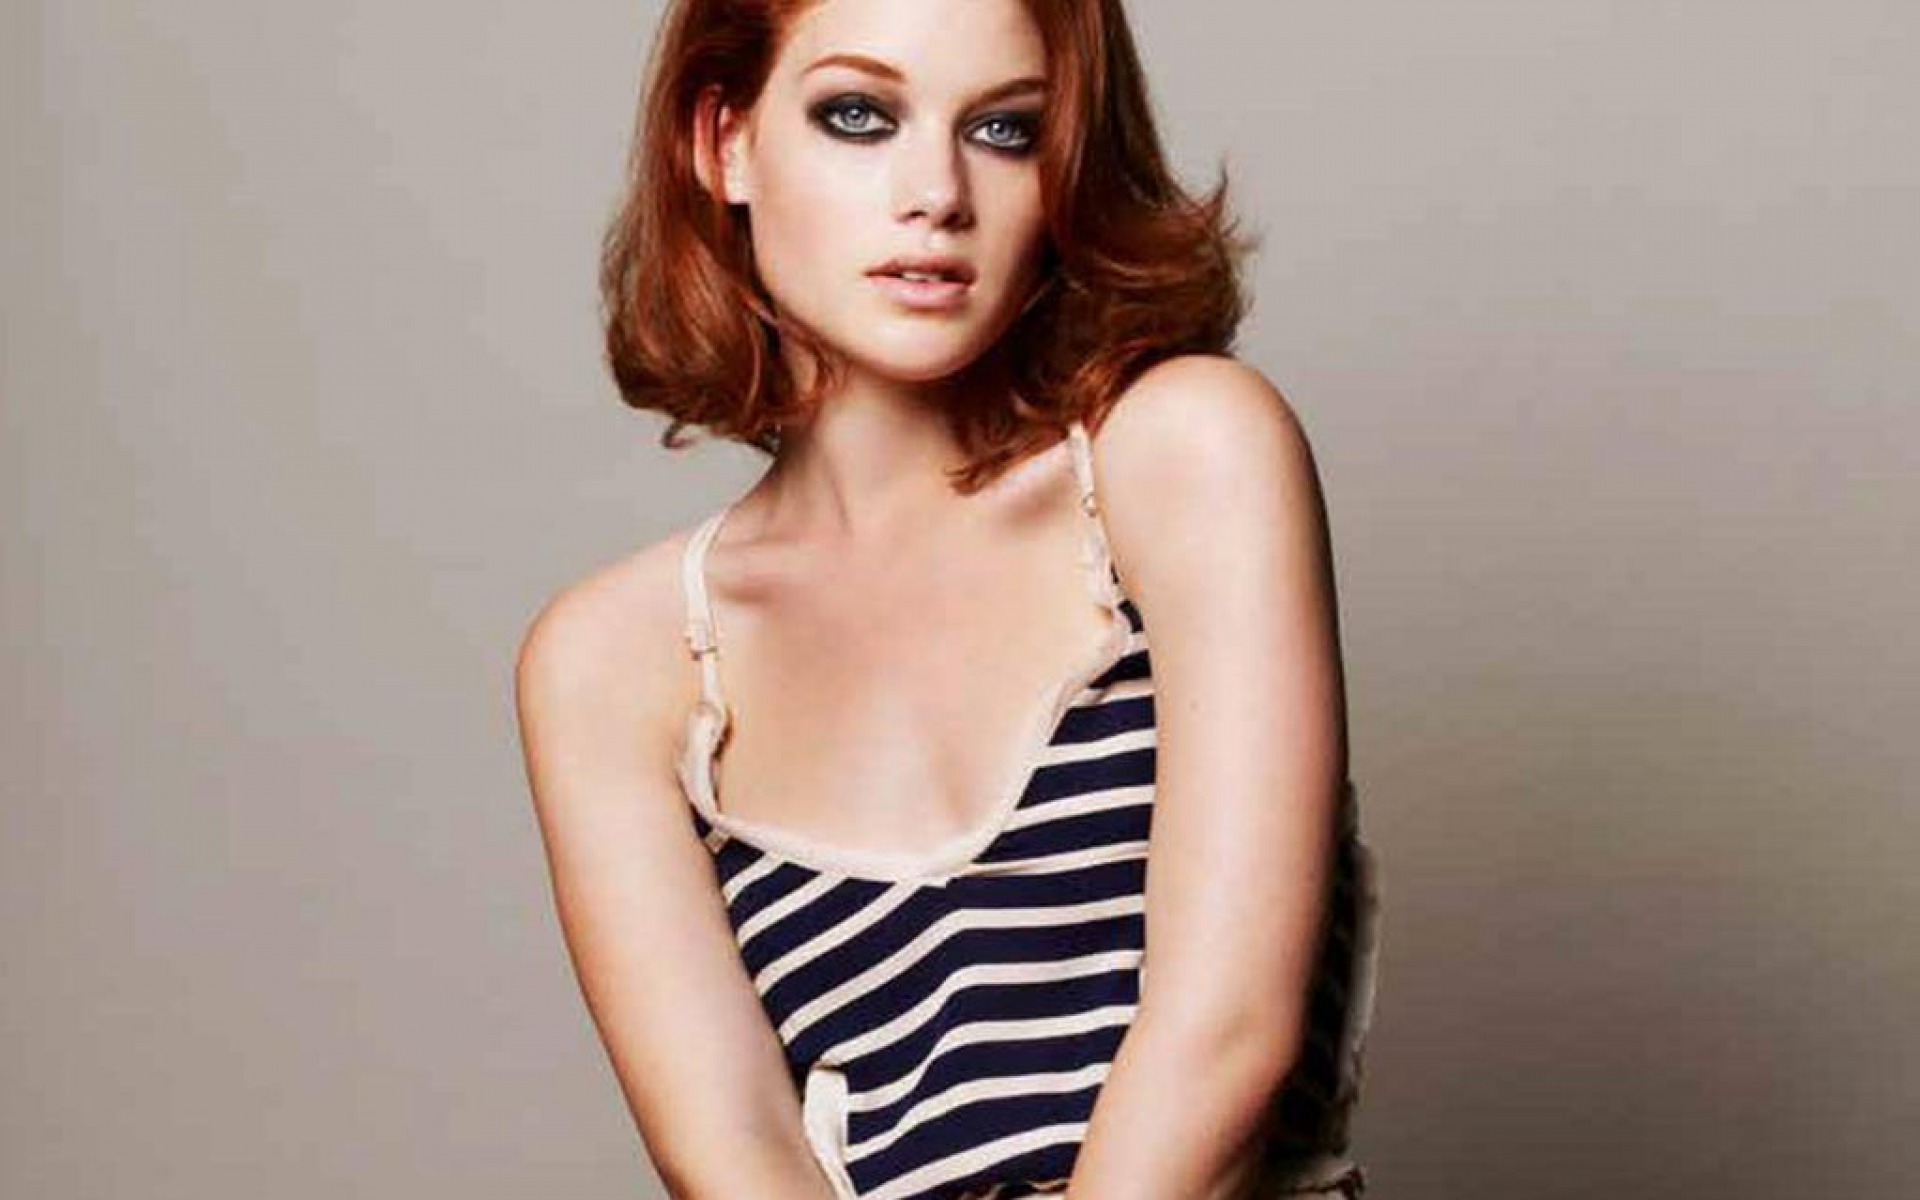 Jane Levy Wallpapers High Resolution And Quality Download